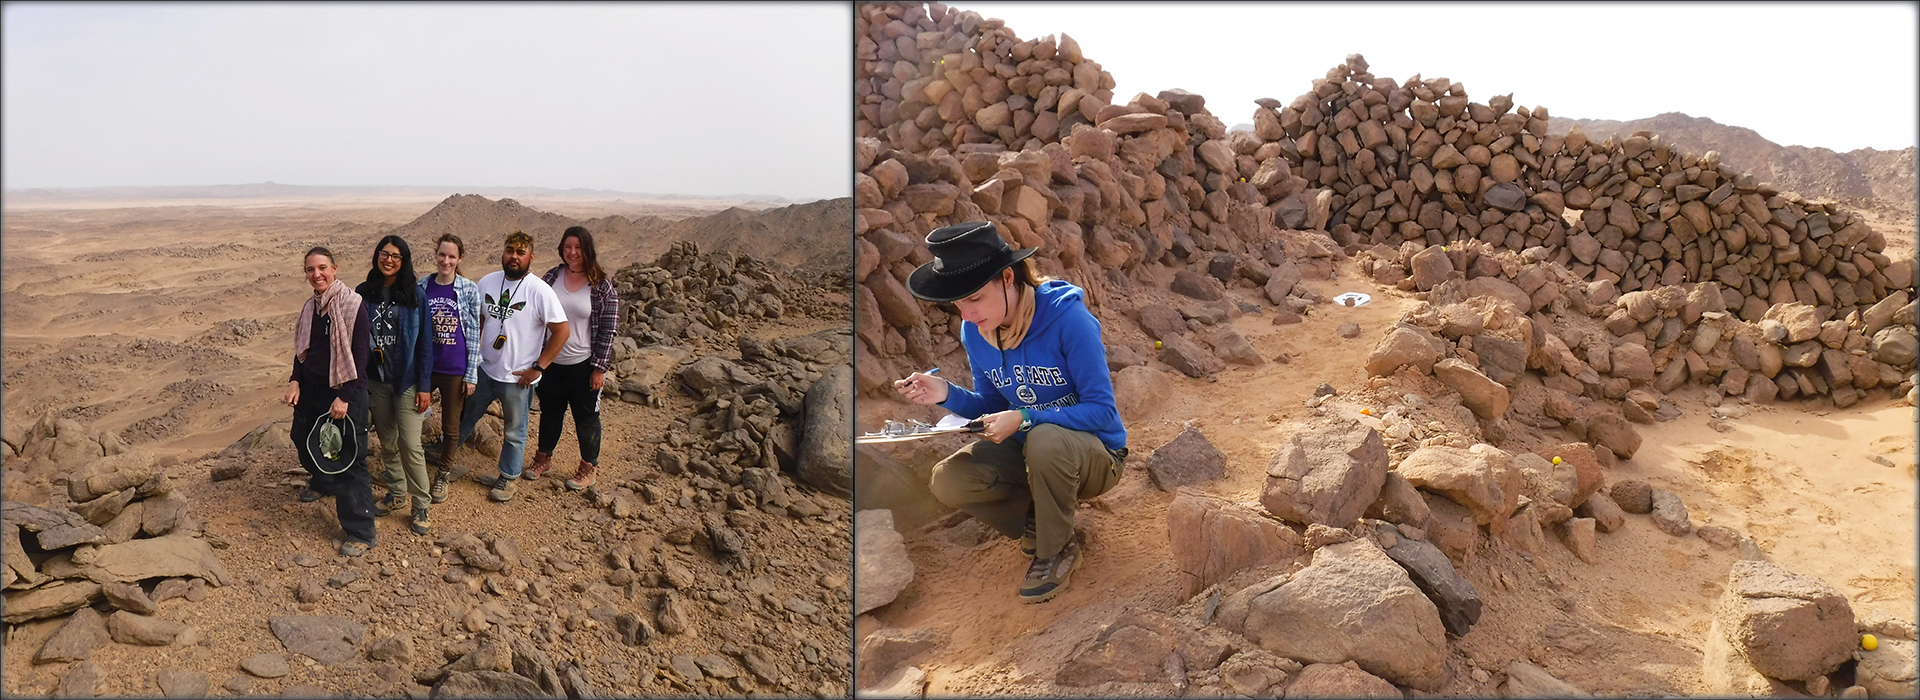 Expedition in Egypt directed by CSUSB professor awarded Archaeological Institute of America grant